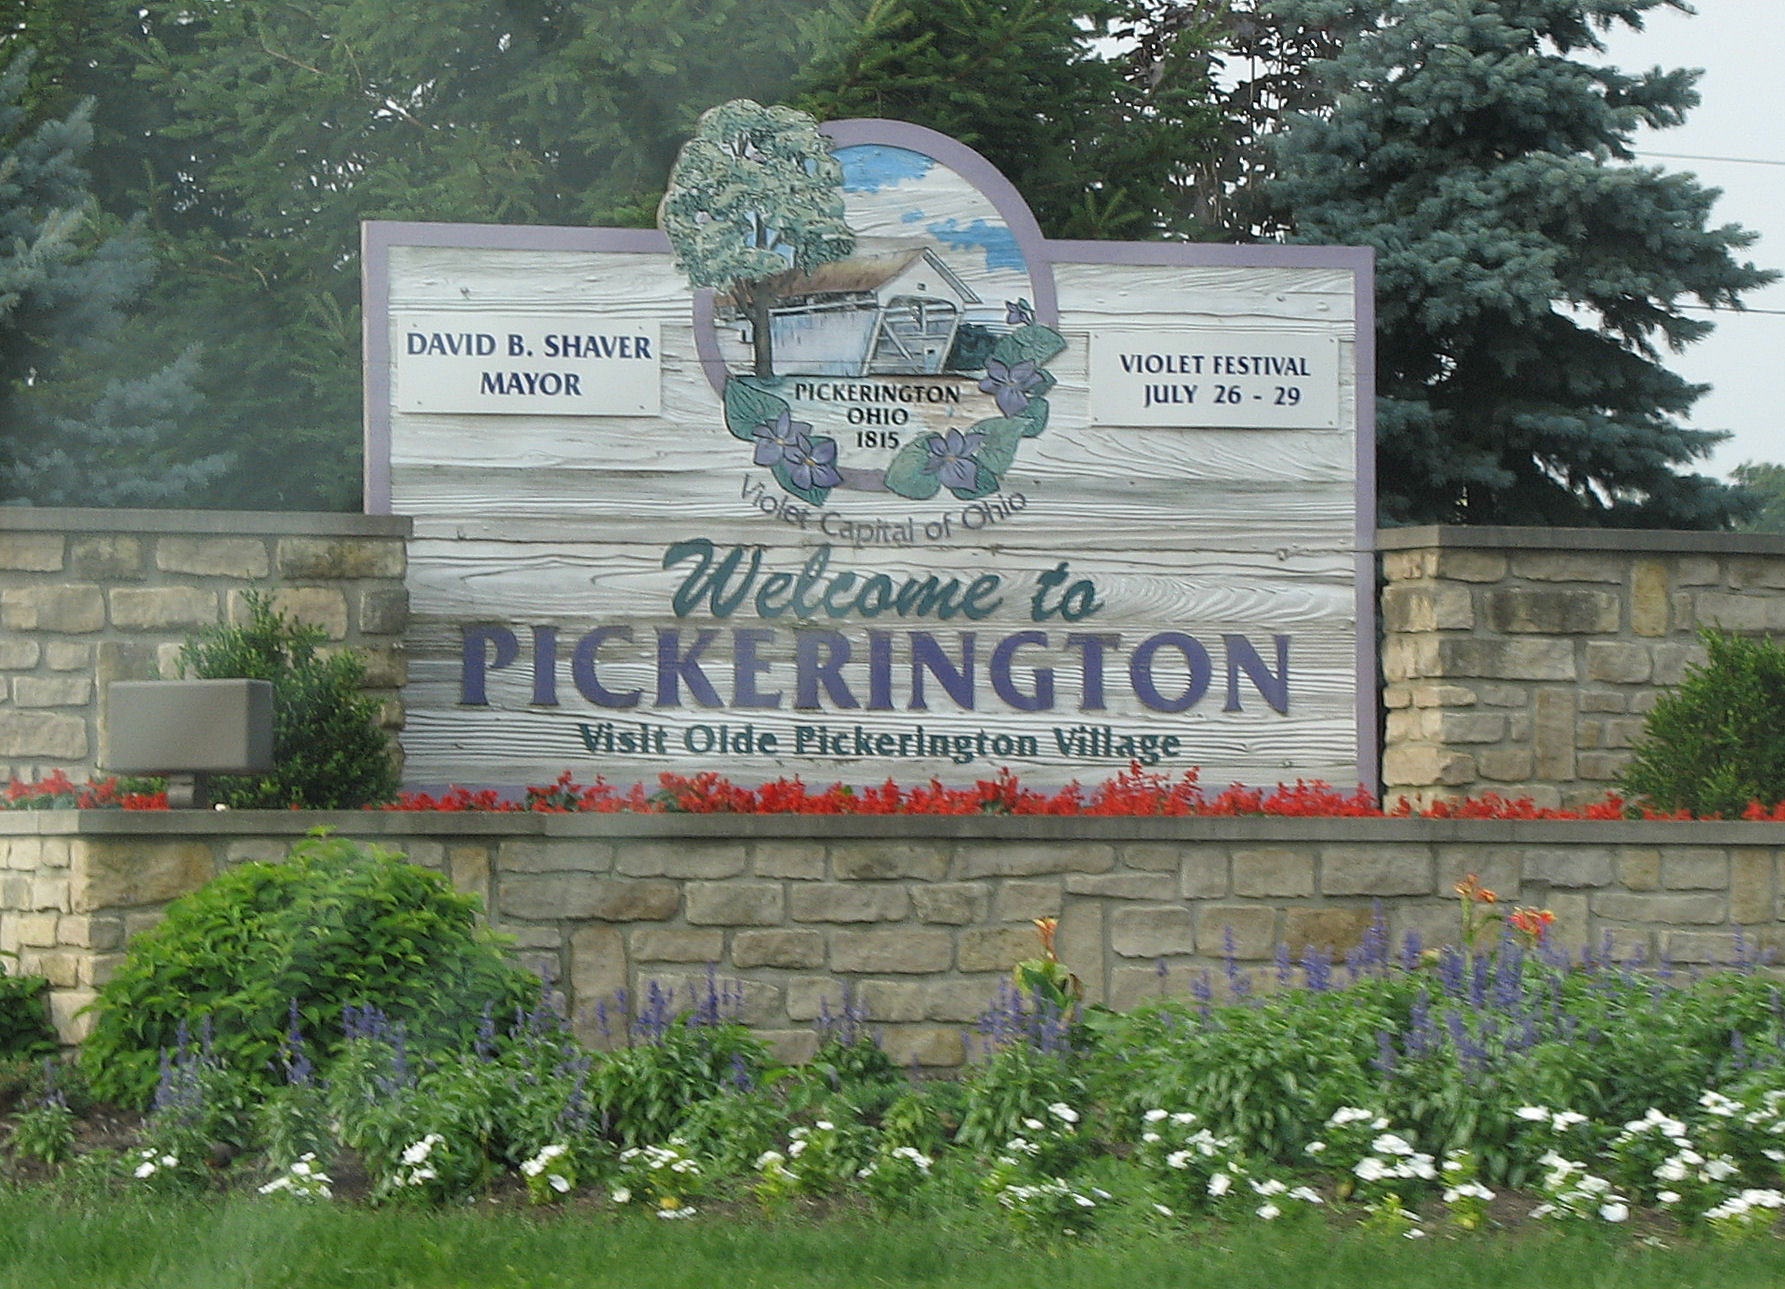 Pickerington Florist